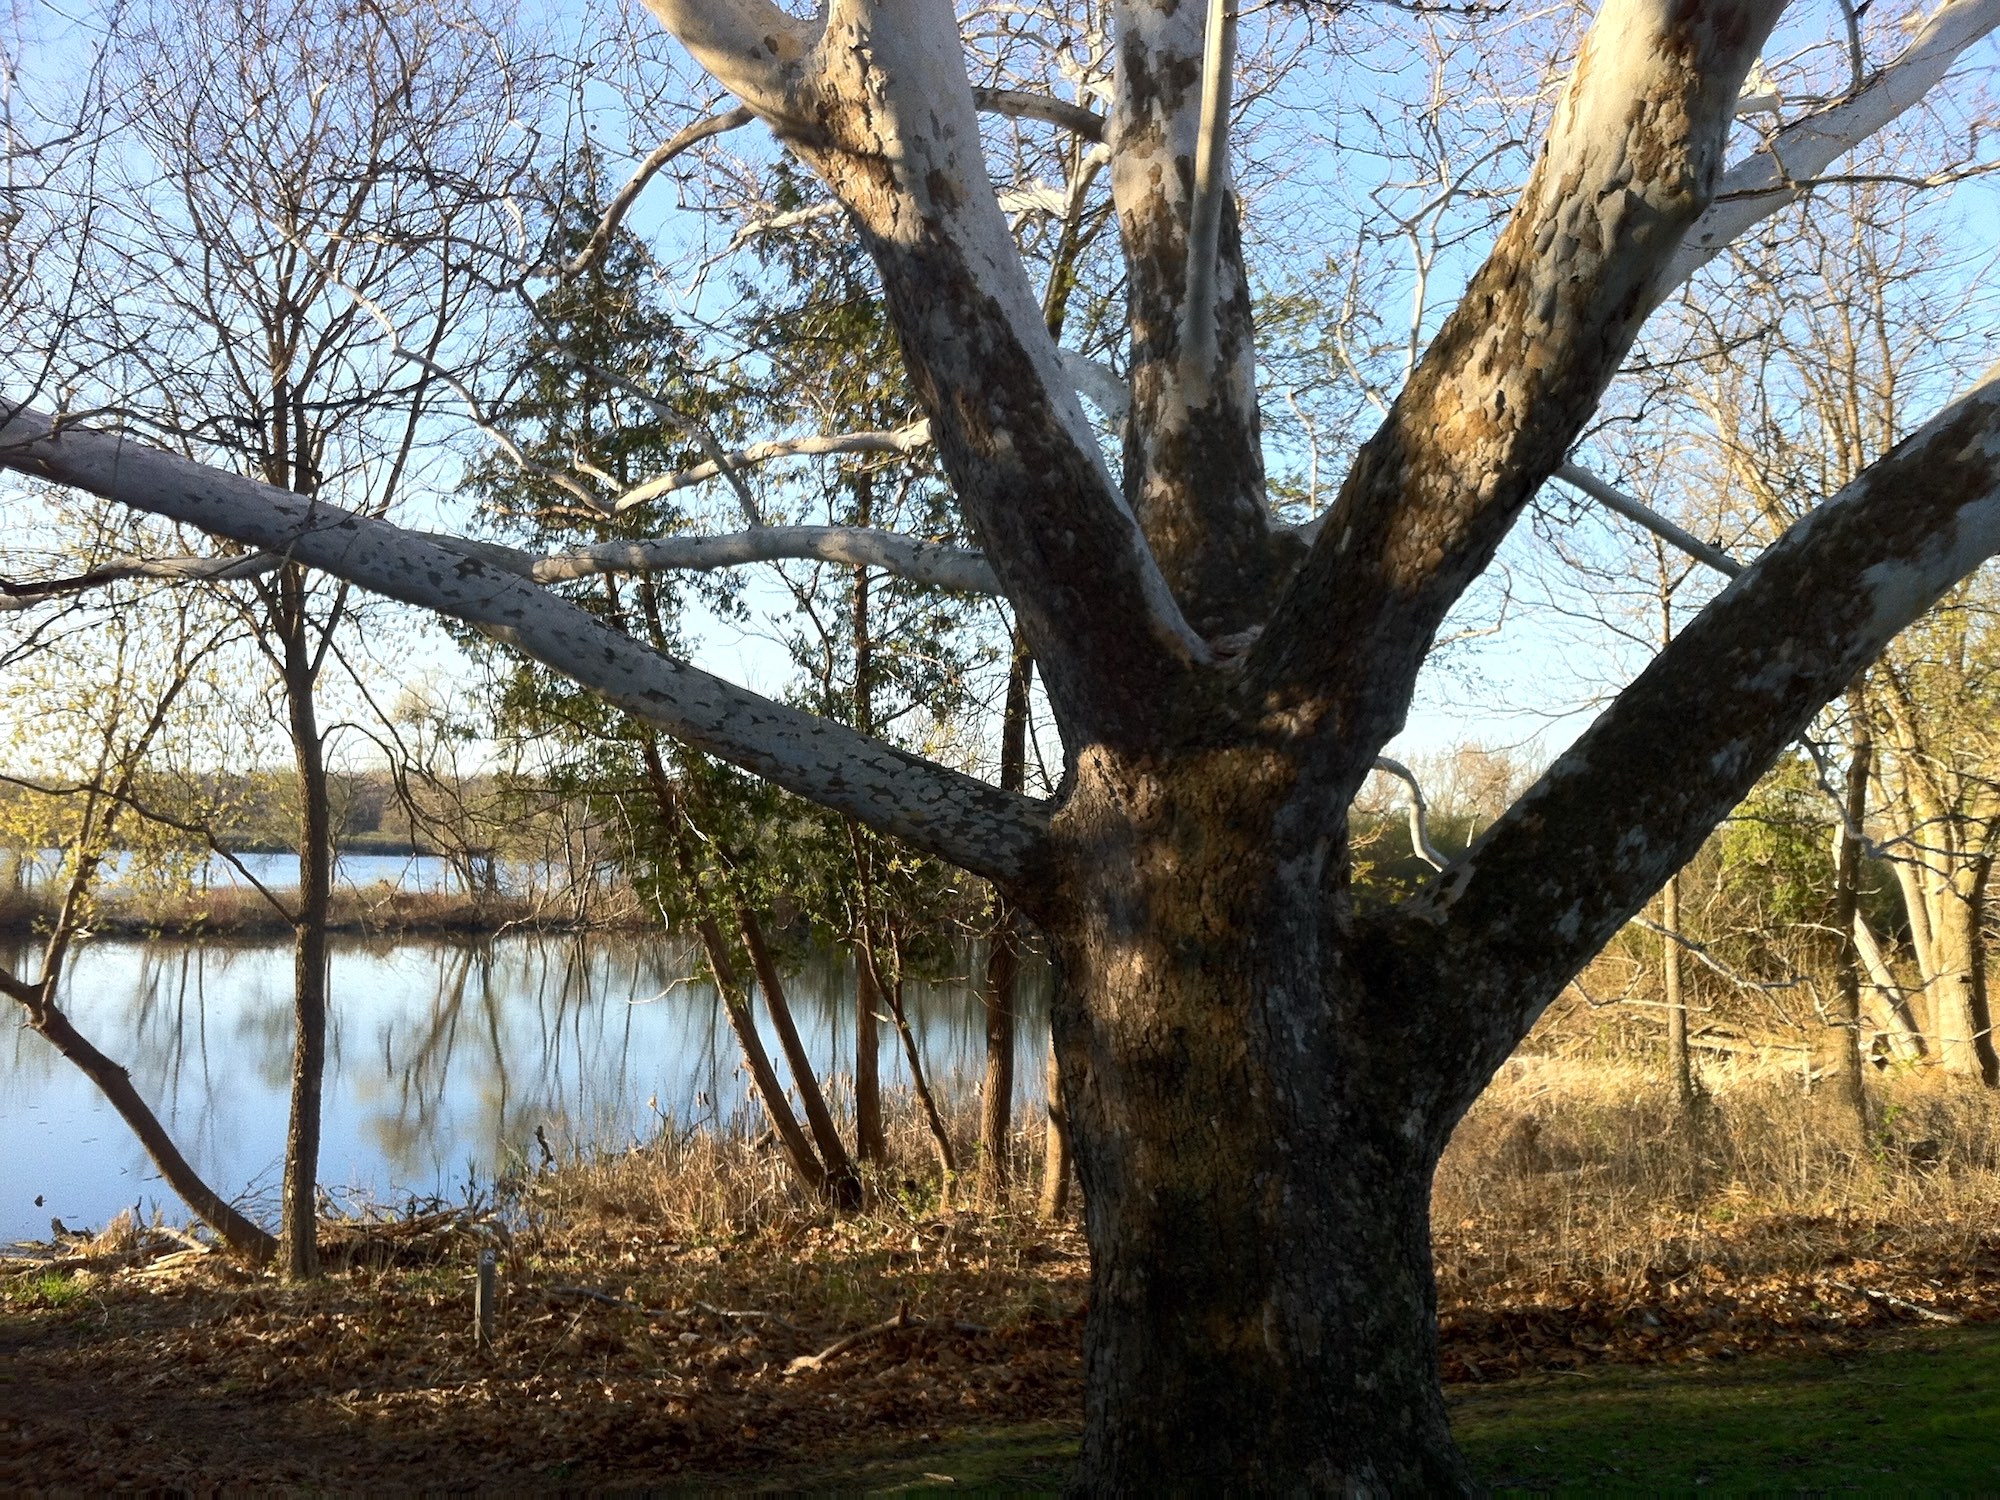 Sycamore tree between Ho-Nee-Um Pond and Arbor Drive on north shore of Lake Wingra on April 24, 2015.